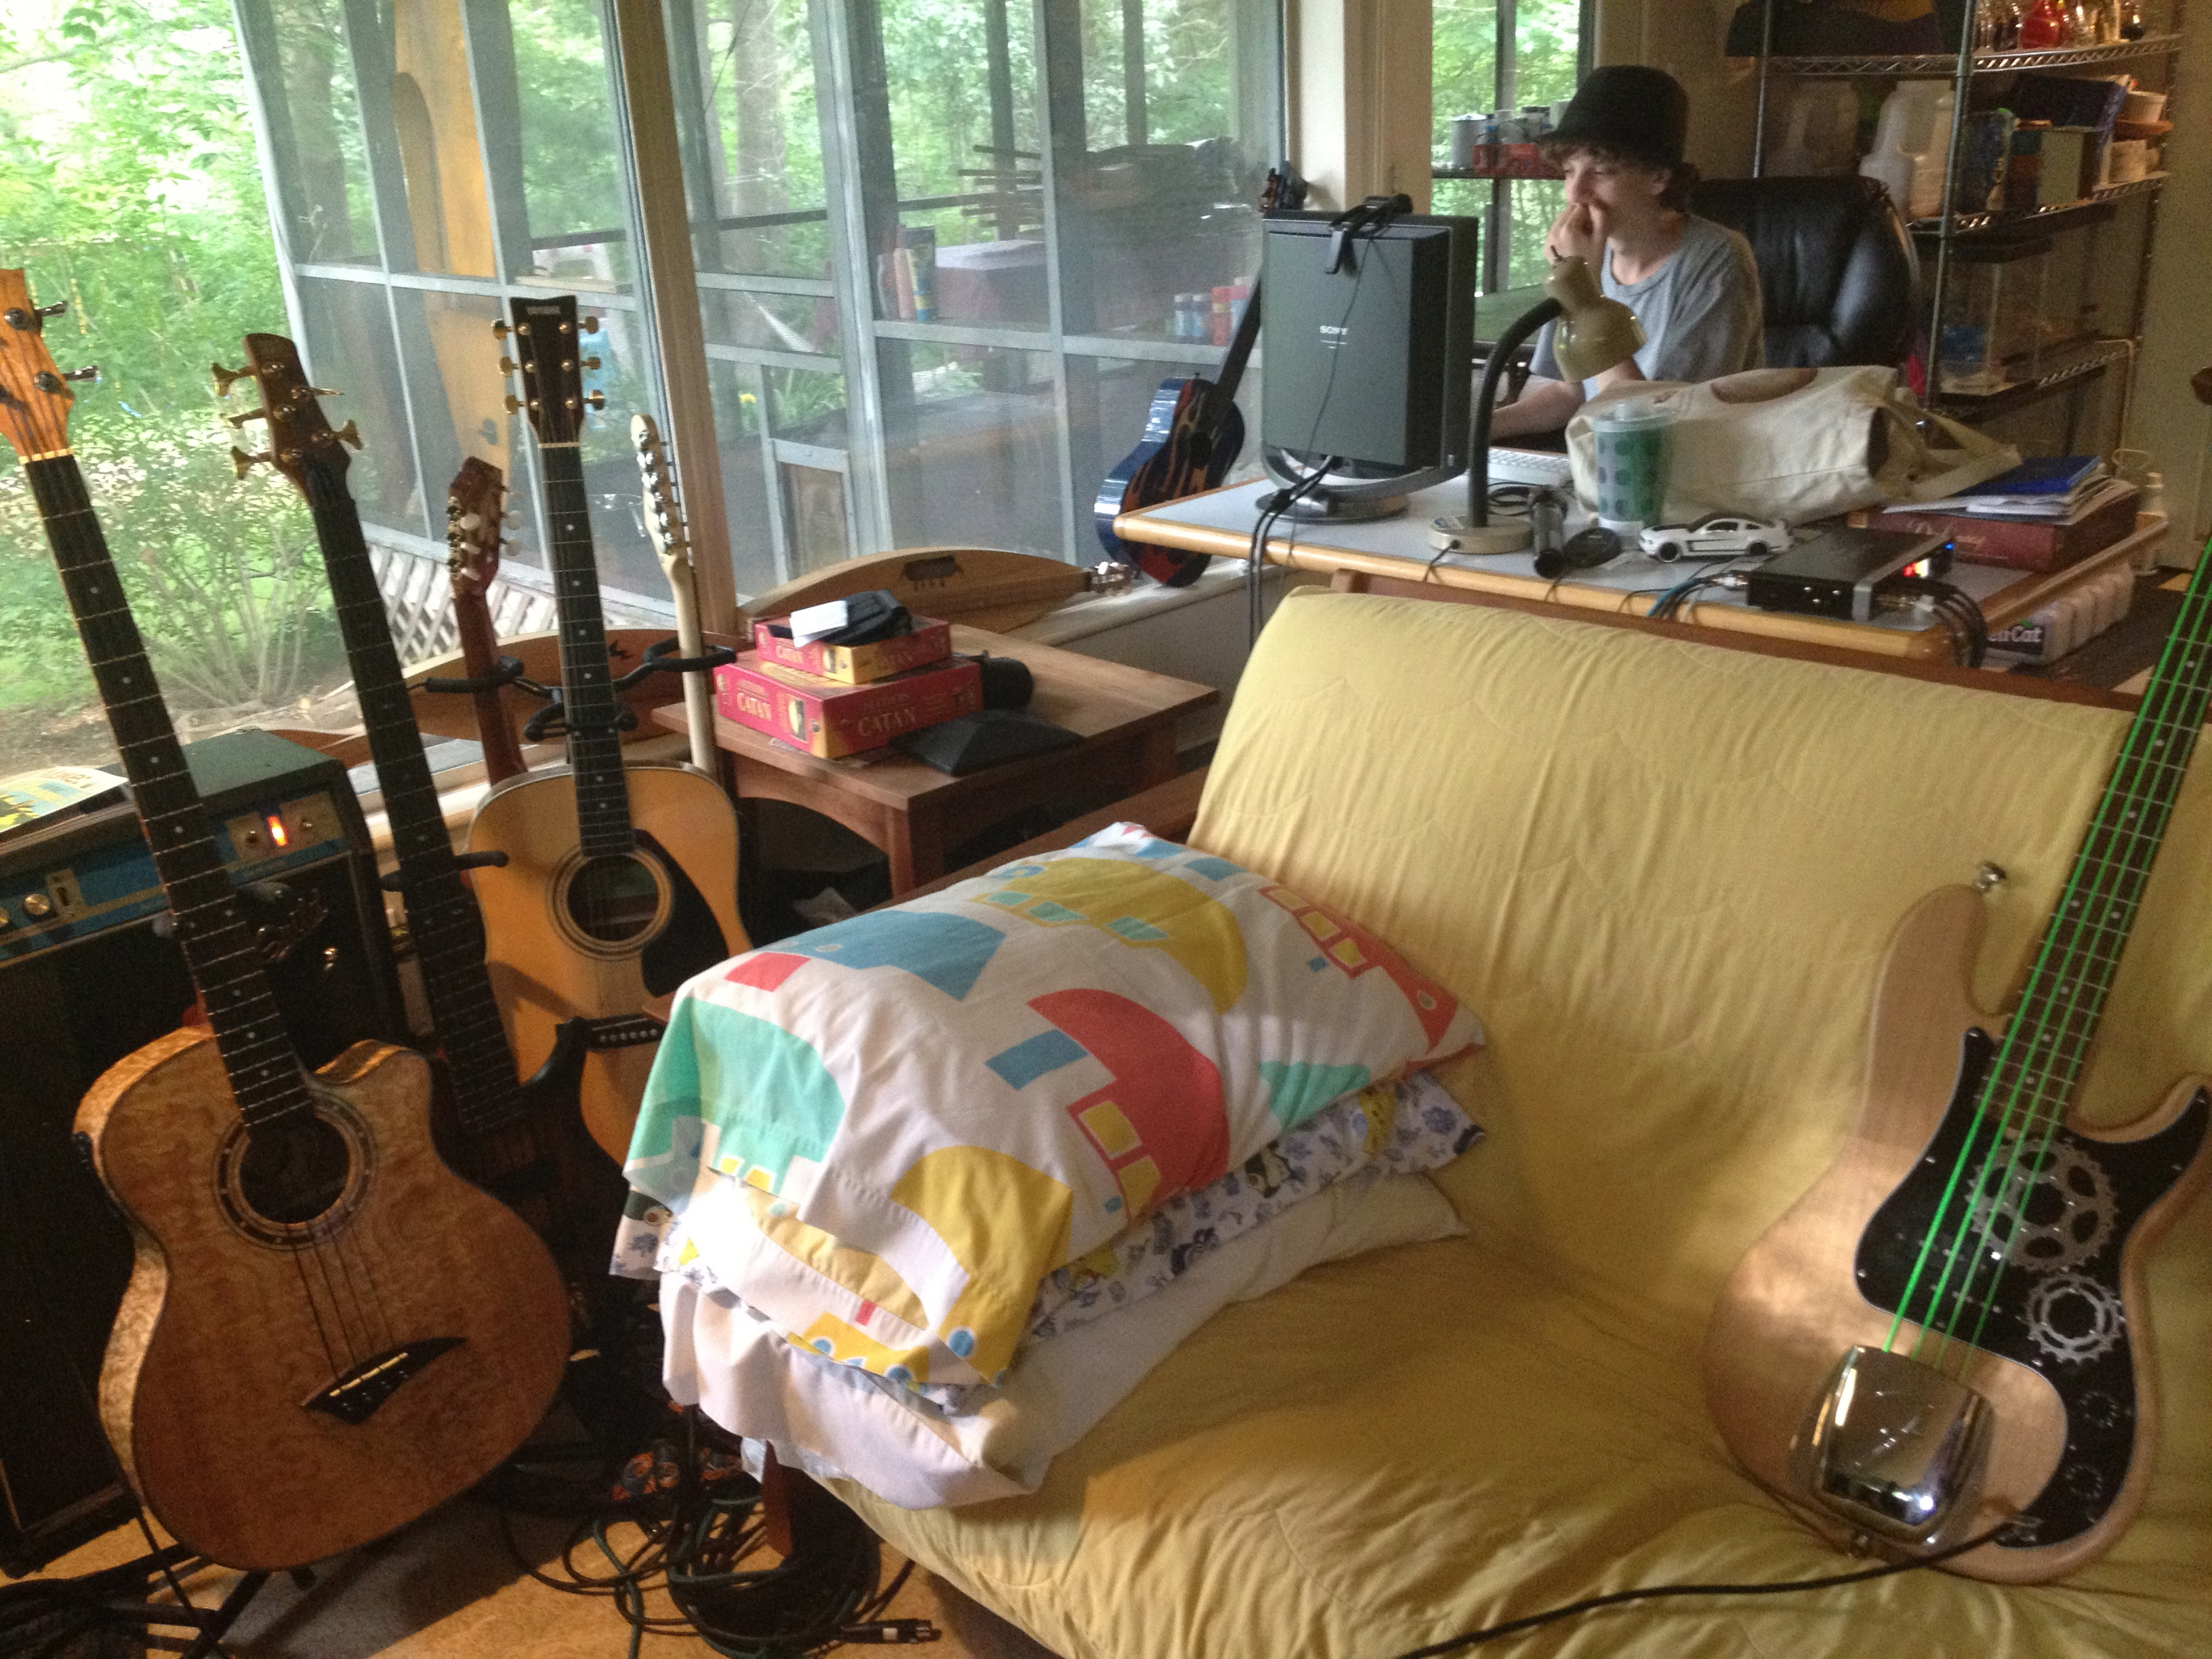 Max made the instruments by the window and on the couch.